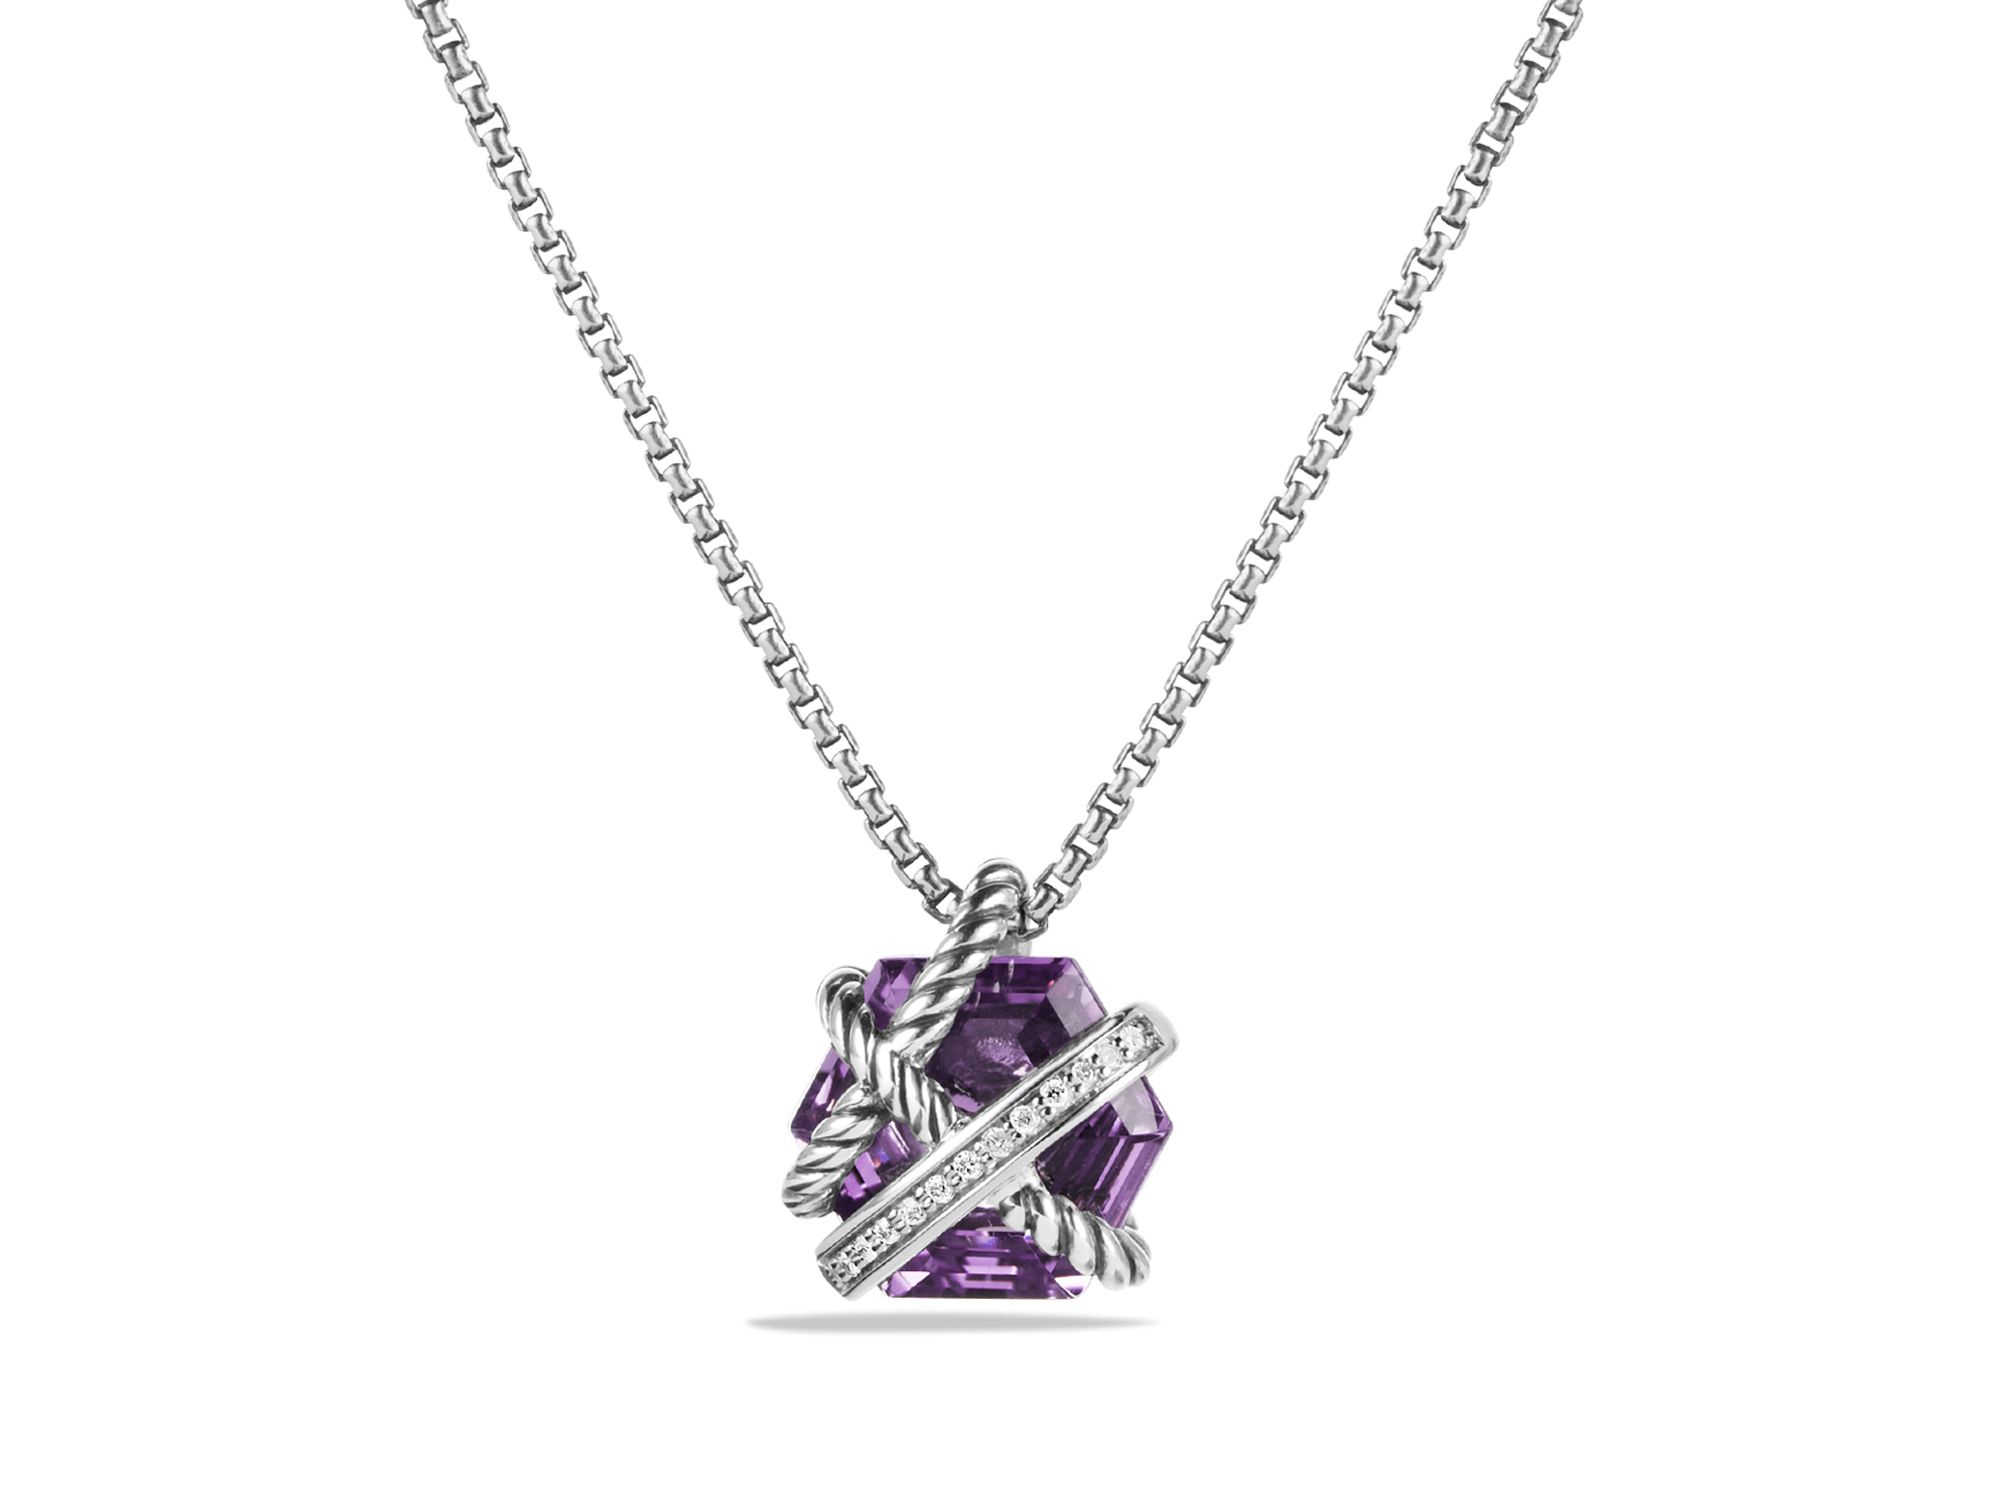 David Yurman Petite Cable Wrap Necklace With Amethyst And